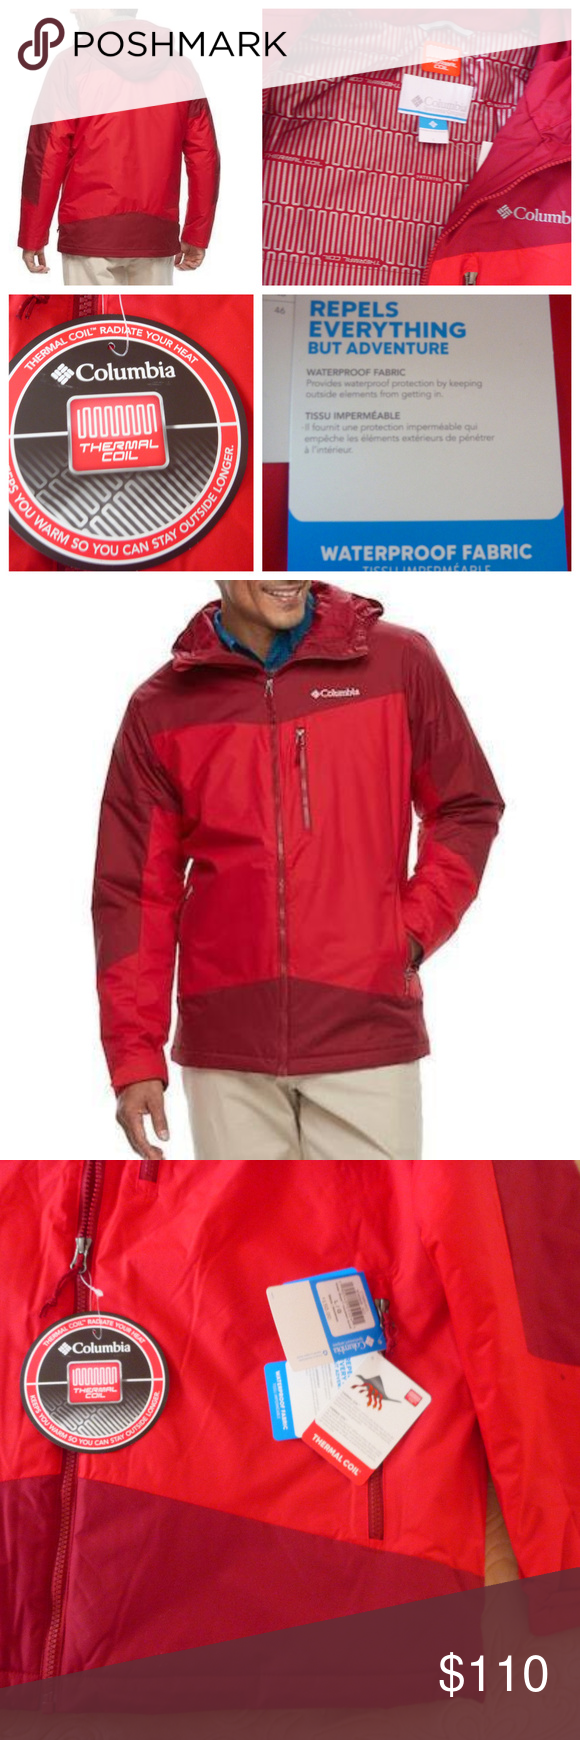 "New Mens Columbia /""Wister Slope/"" Insulated Thermal Coil Waterproof Winter Jacket"